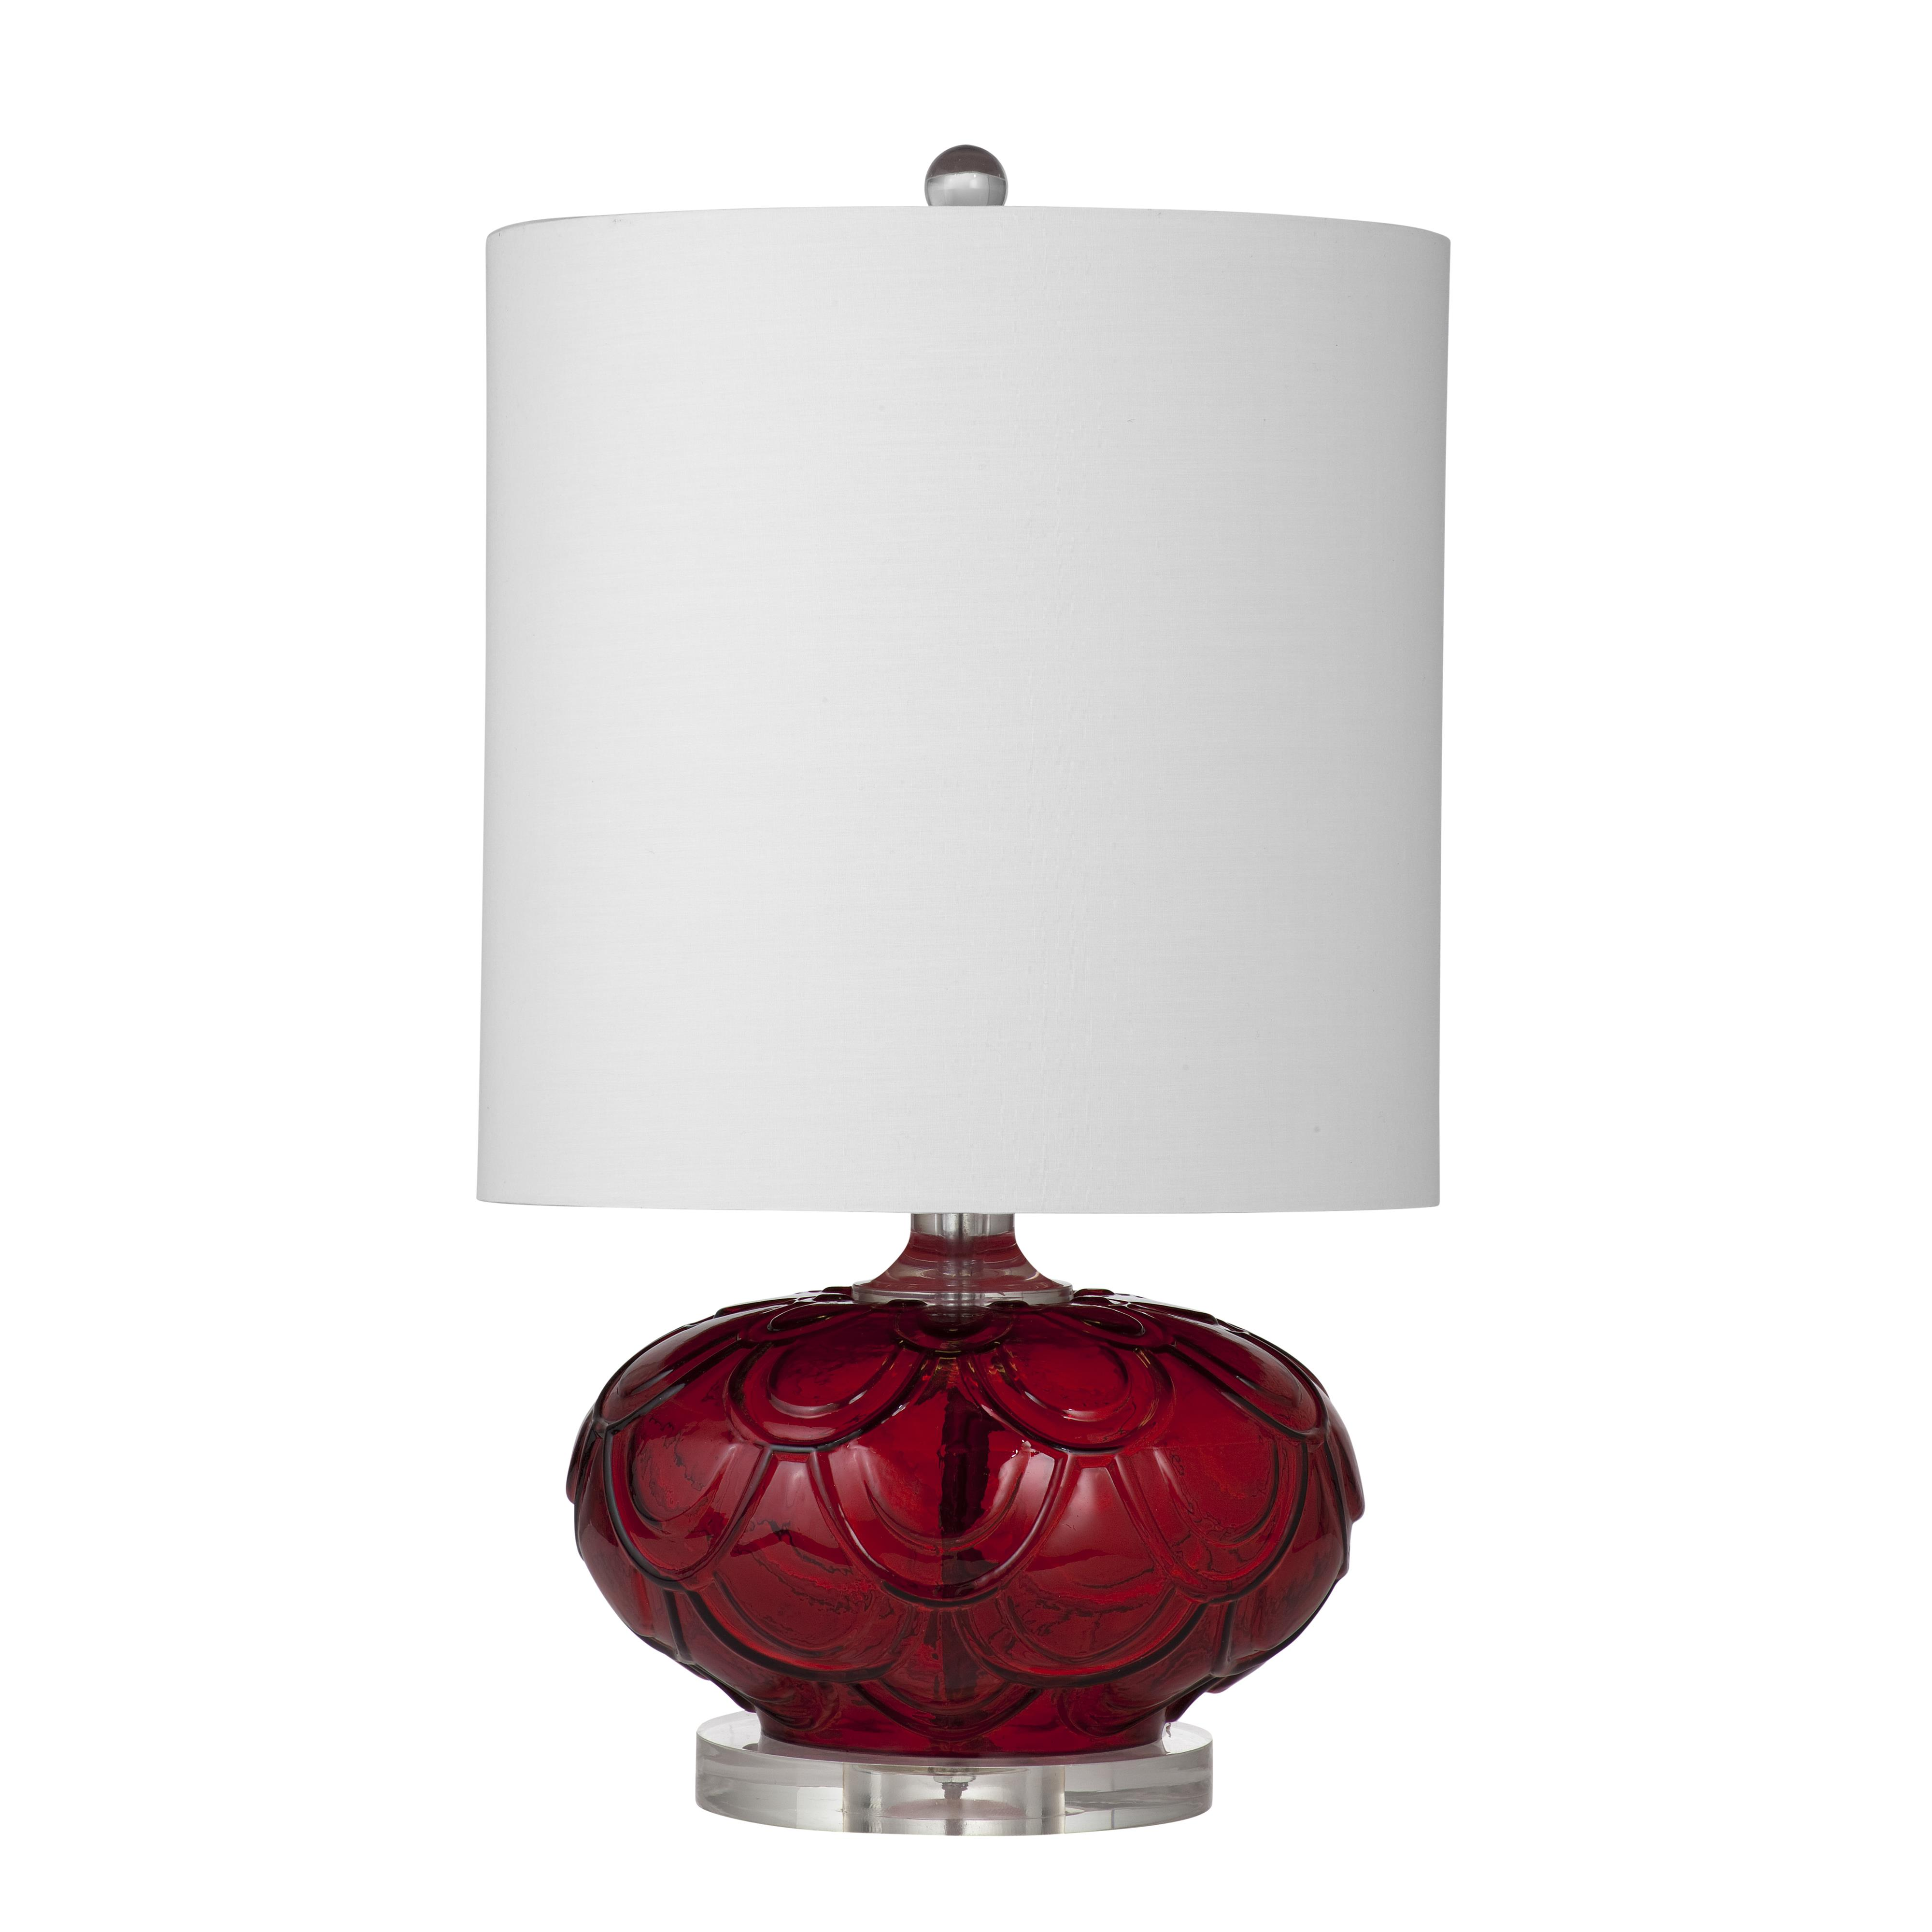 Thoroughly Modern Mia Table Lamp by Bassett Mirror at Alison Craig Home Furnishings